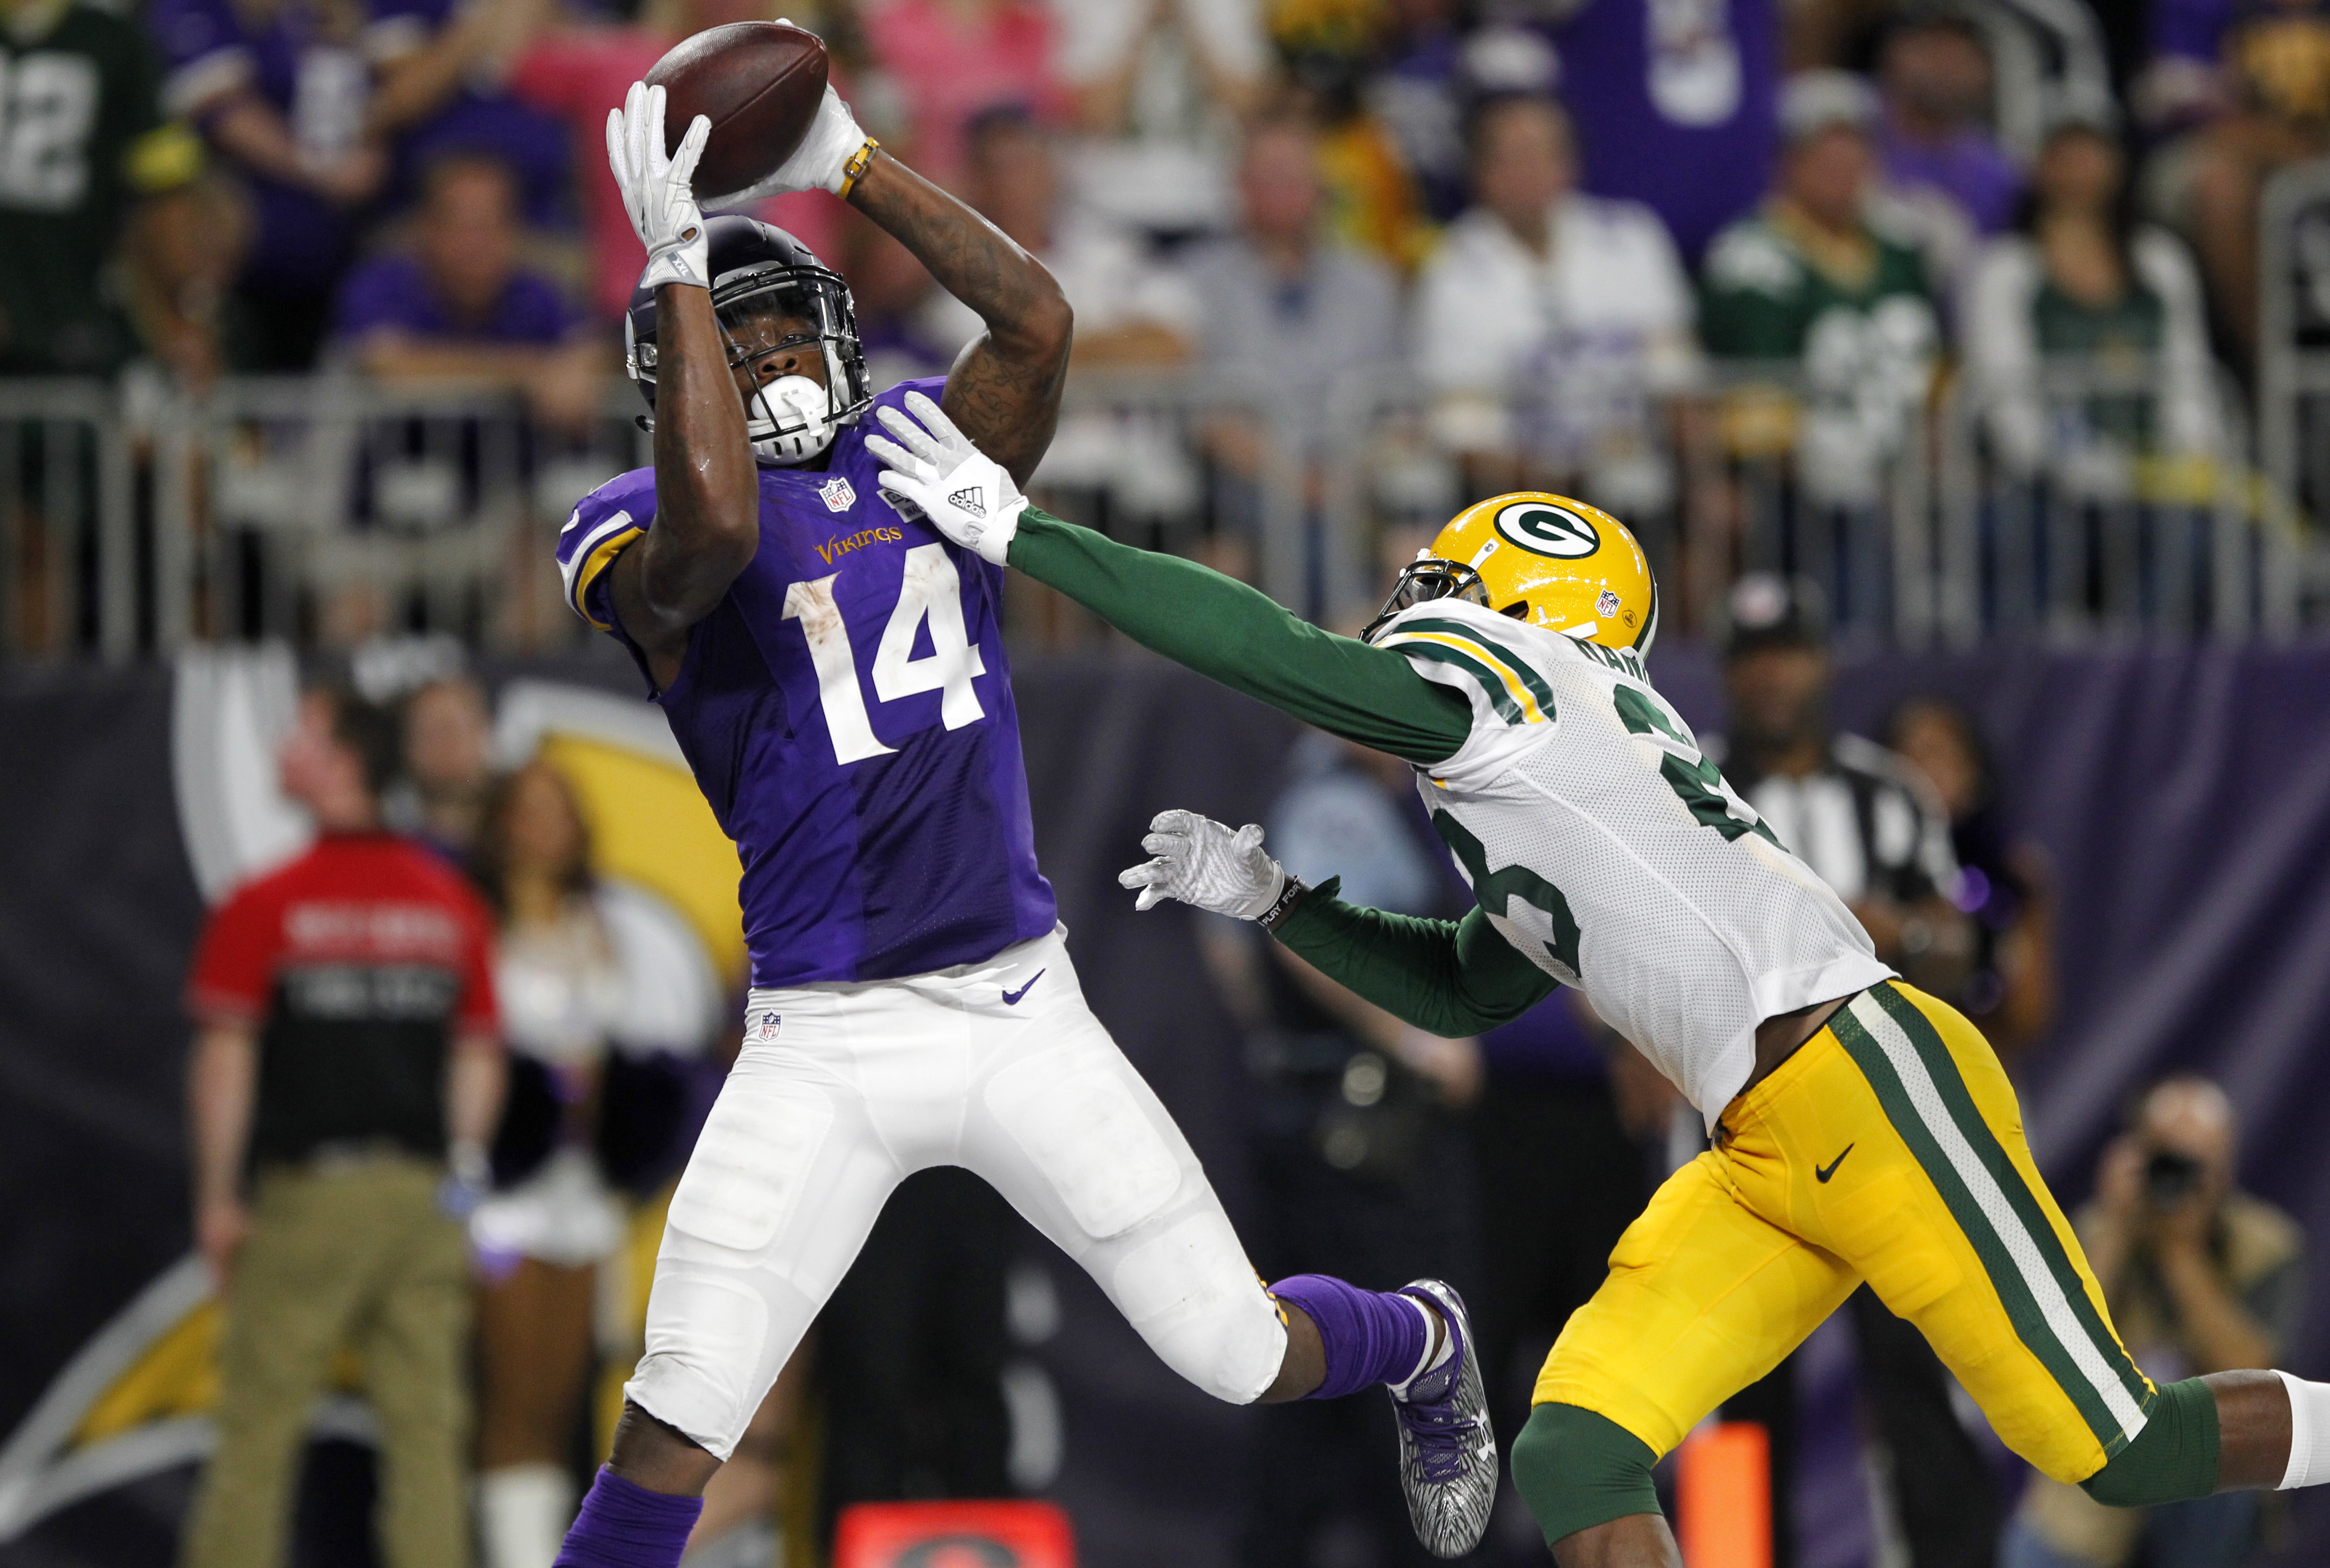 FILE - In this Sunday, Sept. 18, 2016, file photo, Minnesota Vikings wide receiver Stefon Diggs (14) catches a 25-yard touchdown pass over Green Bay Packers cornerback Damarious Randall, right, during the second half of an NFL football game in Minneapolis